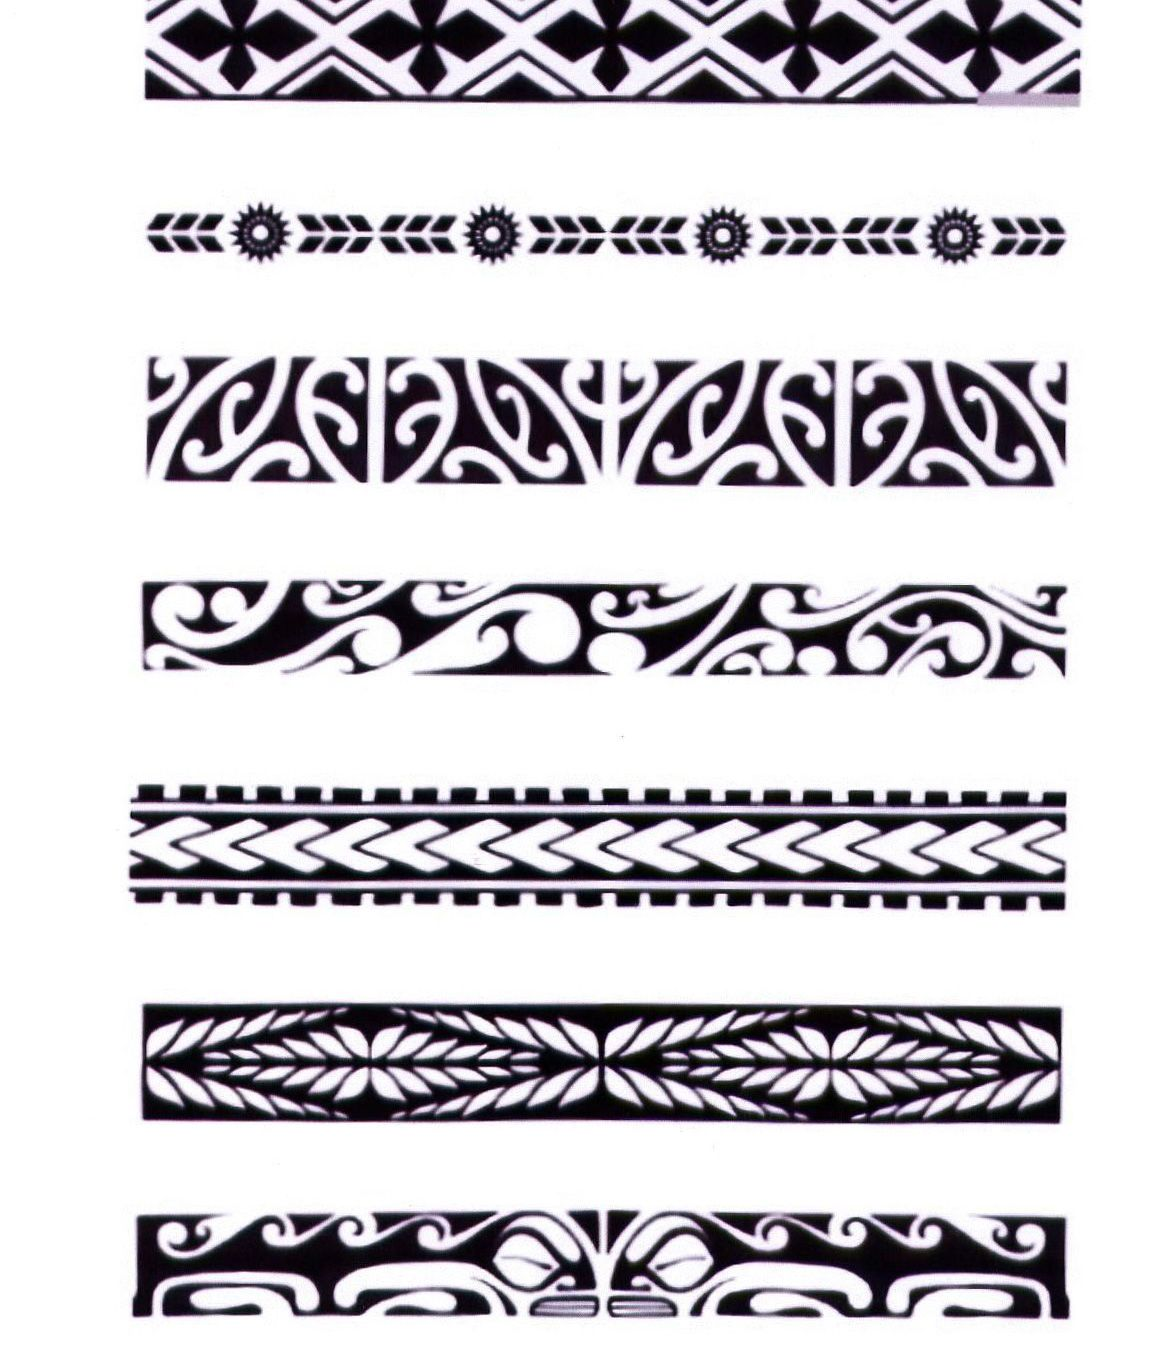 All times tribal tattoo meaning shoulder tattoos sleeve tattoo all times tribal tattoo meaning shoulder tattoos sleeve polynesian buycottarizona Choice Image